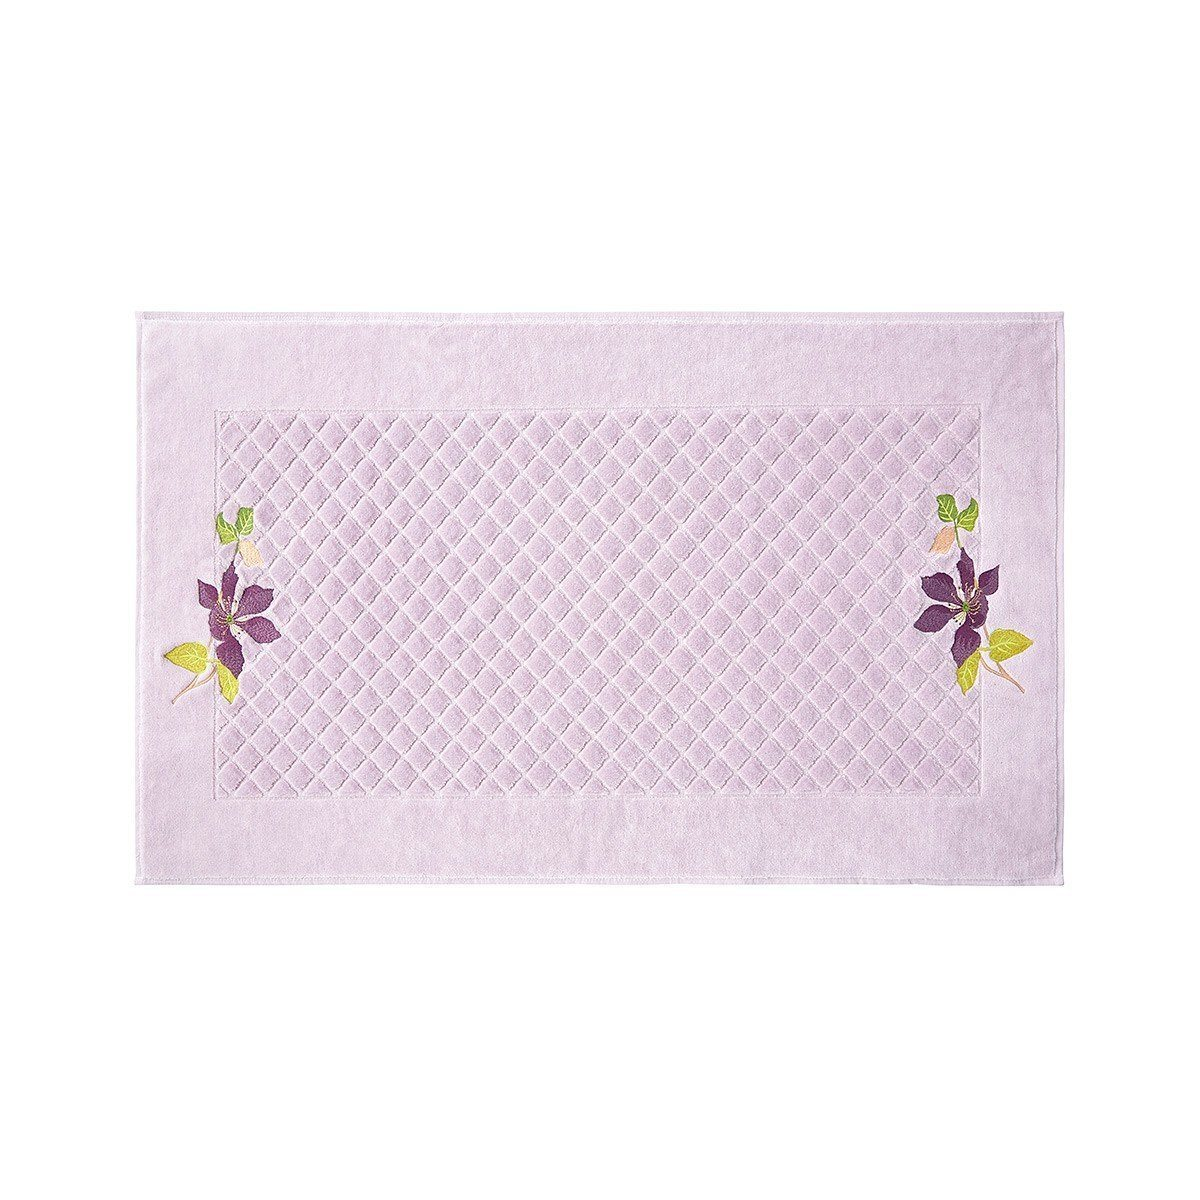 Yves Delorme Clematis Tub Mat - Fig Linens